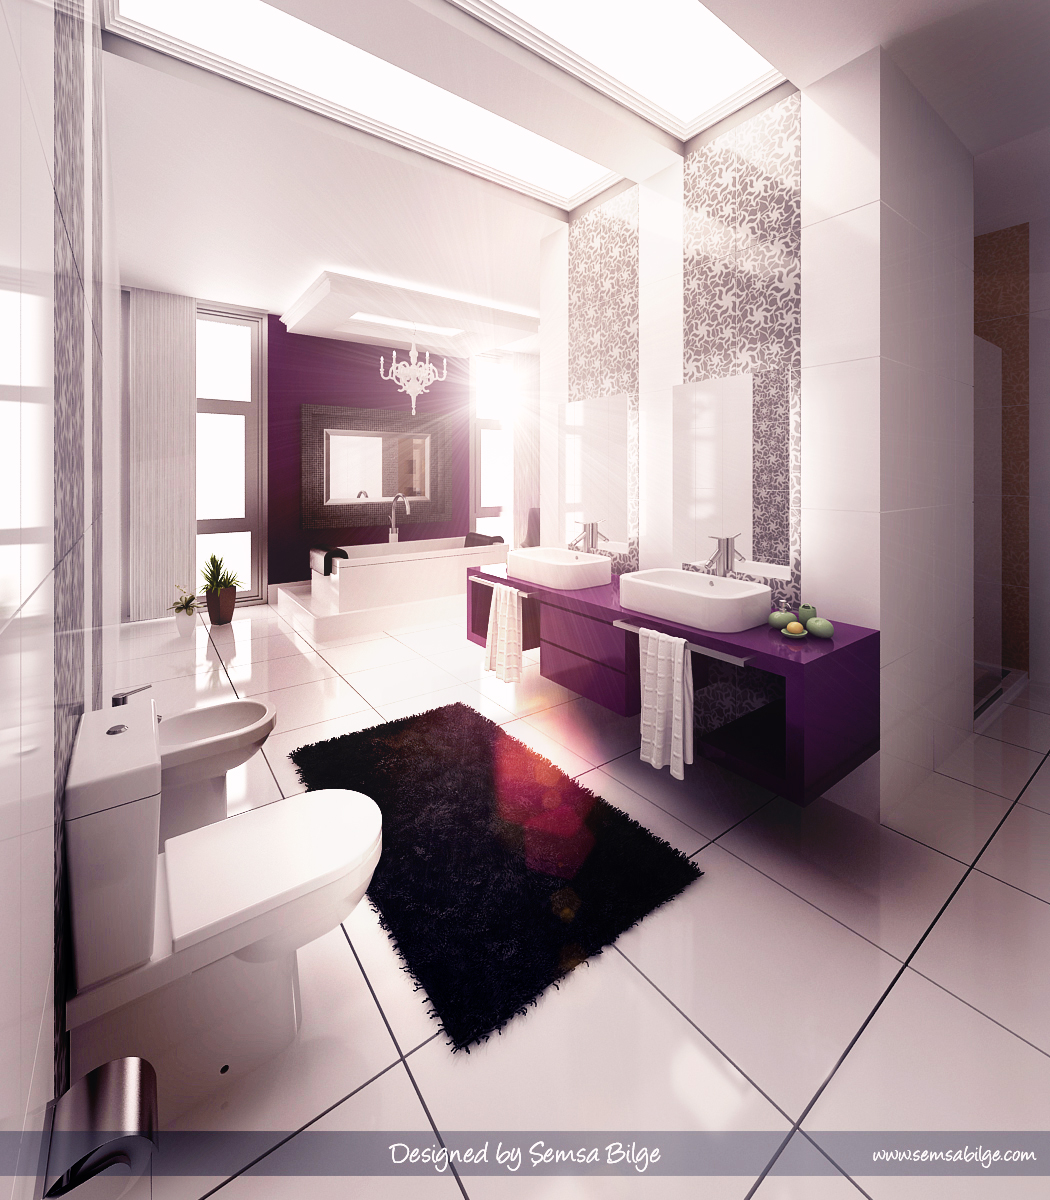 Inspiring bathroom designs for the soul for Restroom design ideas